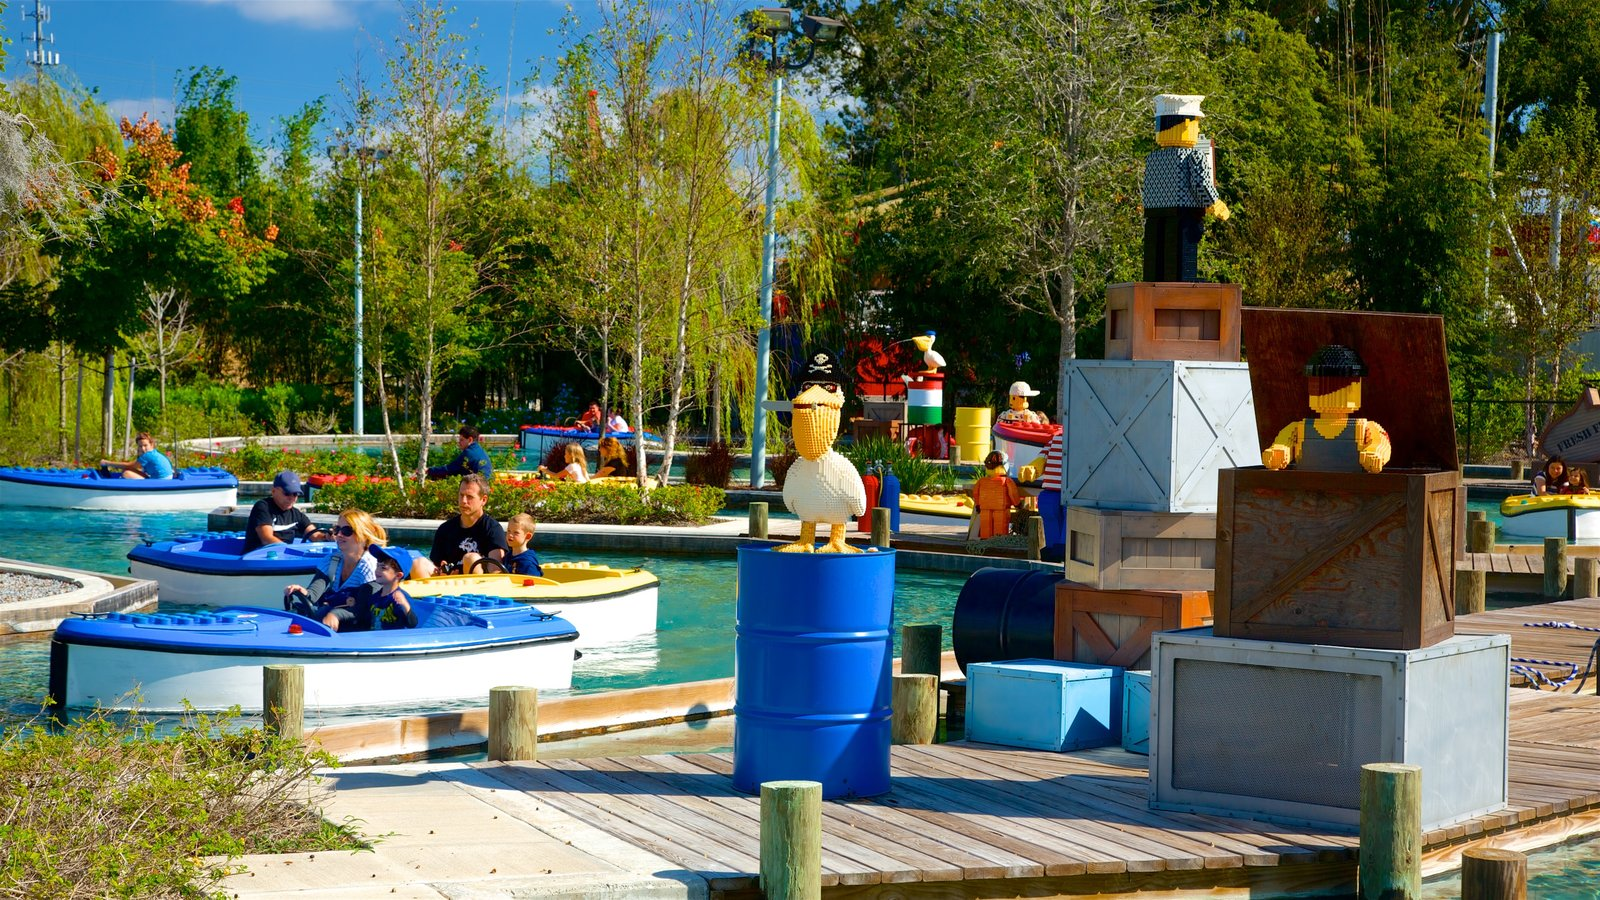 Legoland Florida featuring rides and a waterpark as well as a family